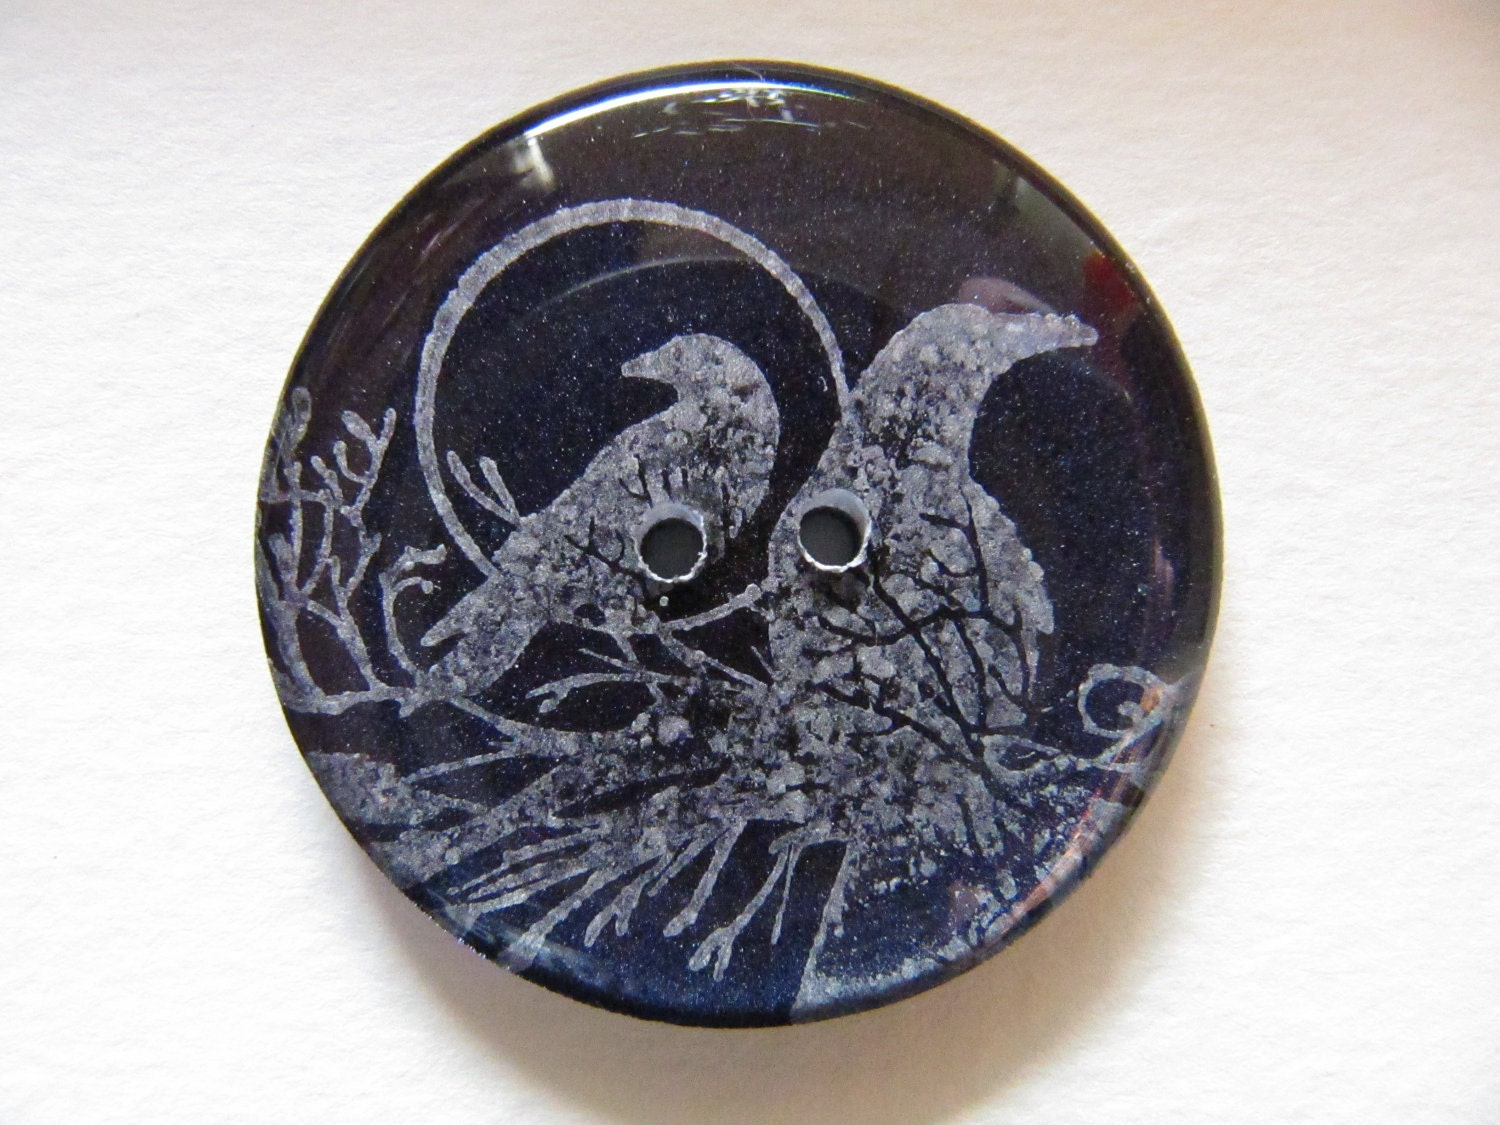 Set of 2 Handmade Resin Buttons - FREE U.S. Shipping - Midnight Purple with Silver Ravens on a Brach in Front of a Full Moon